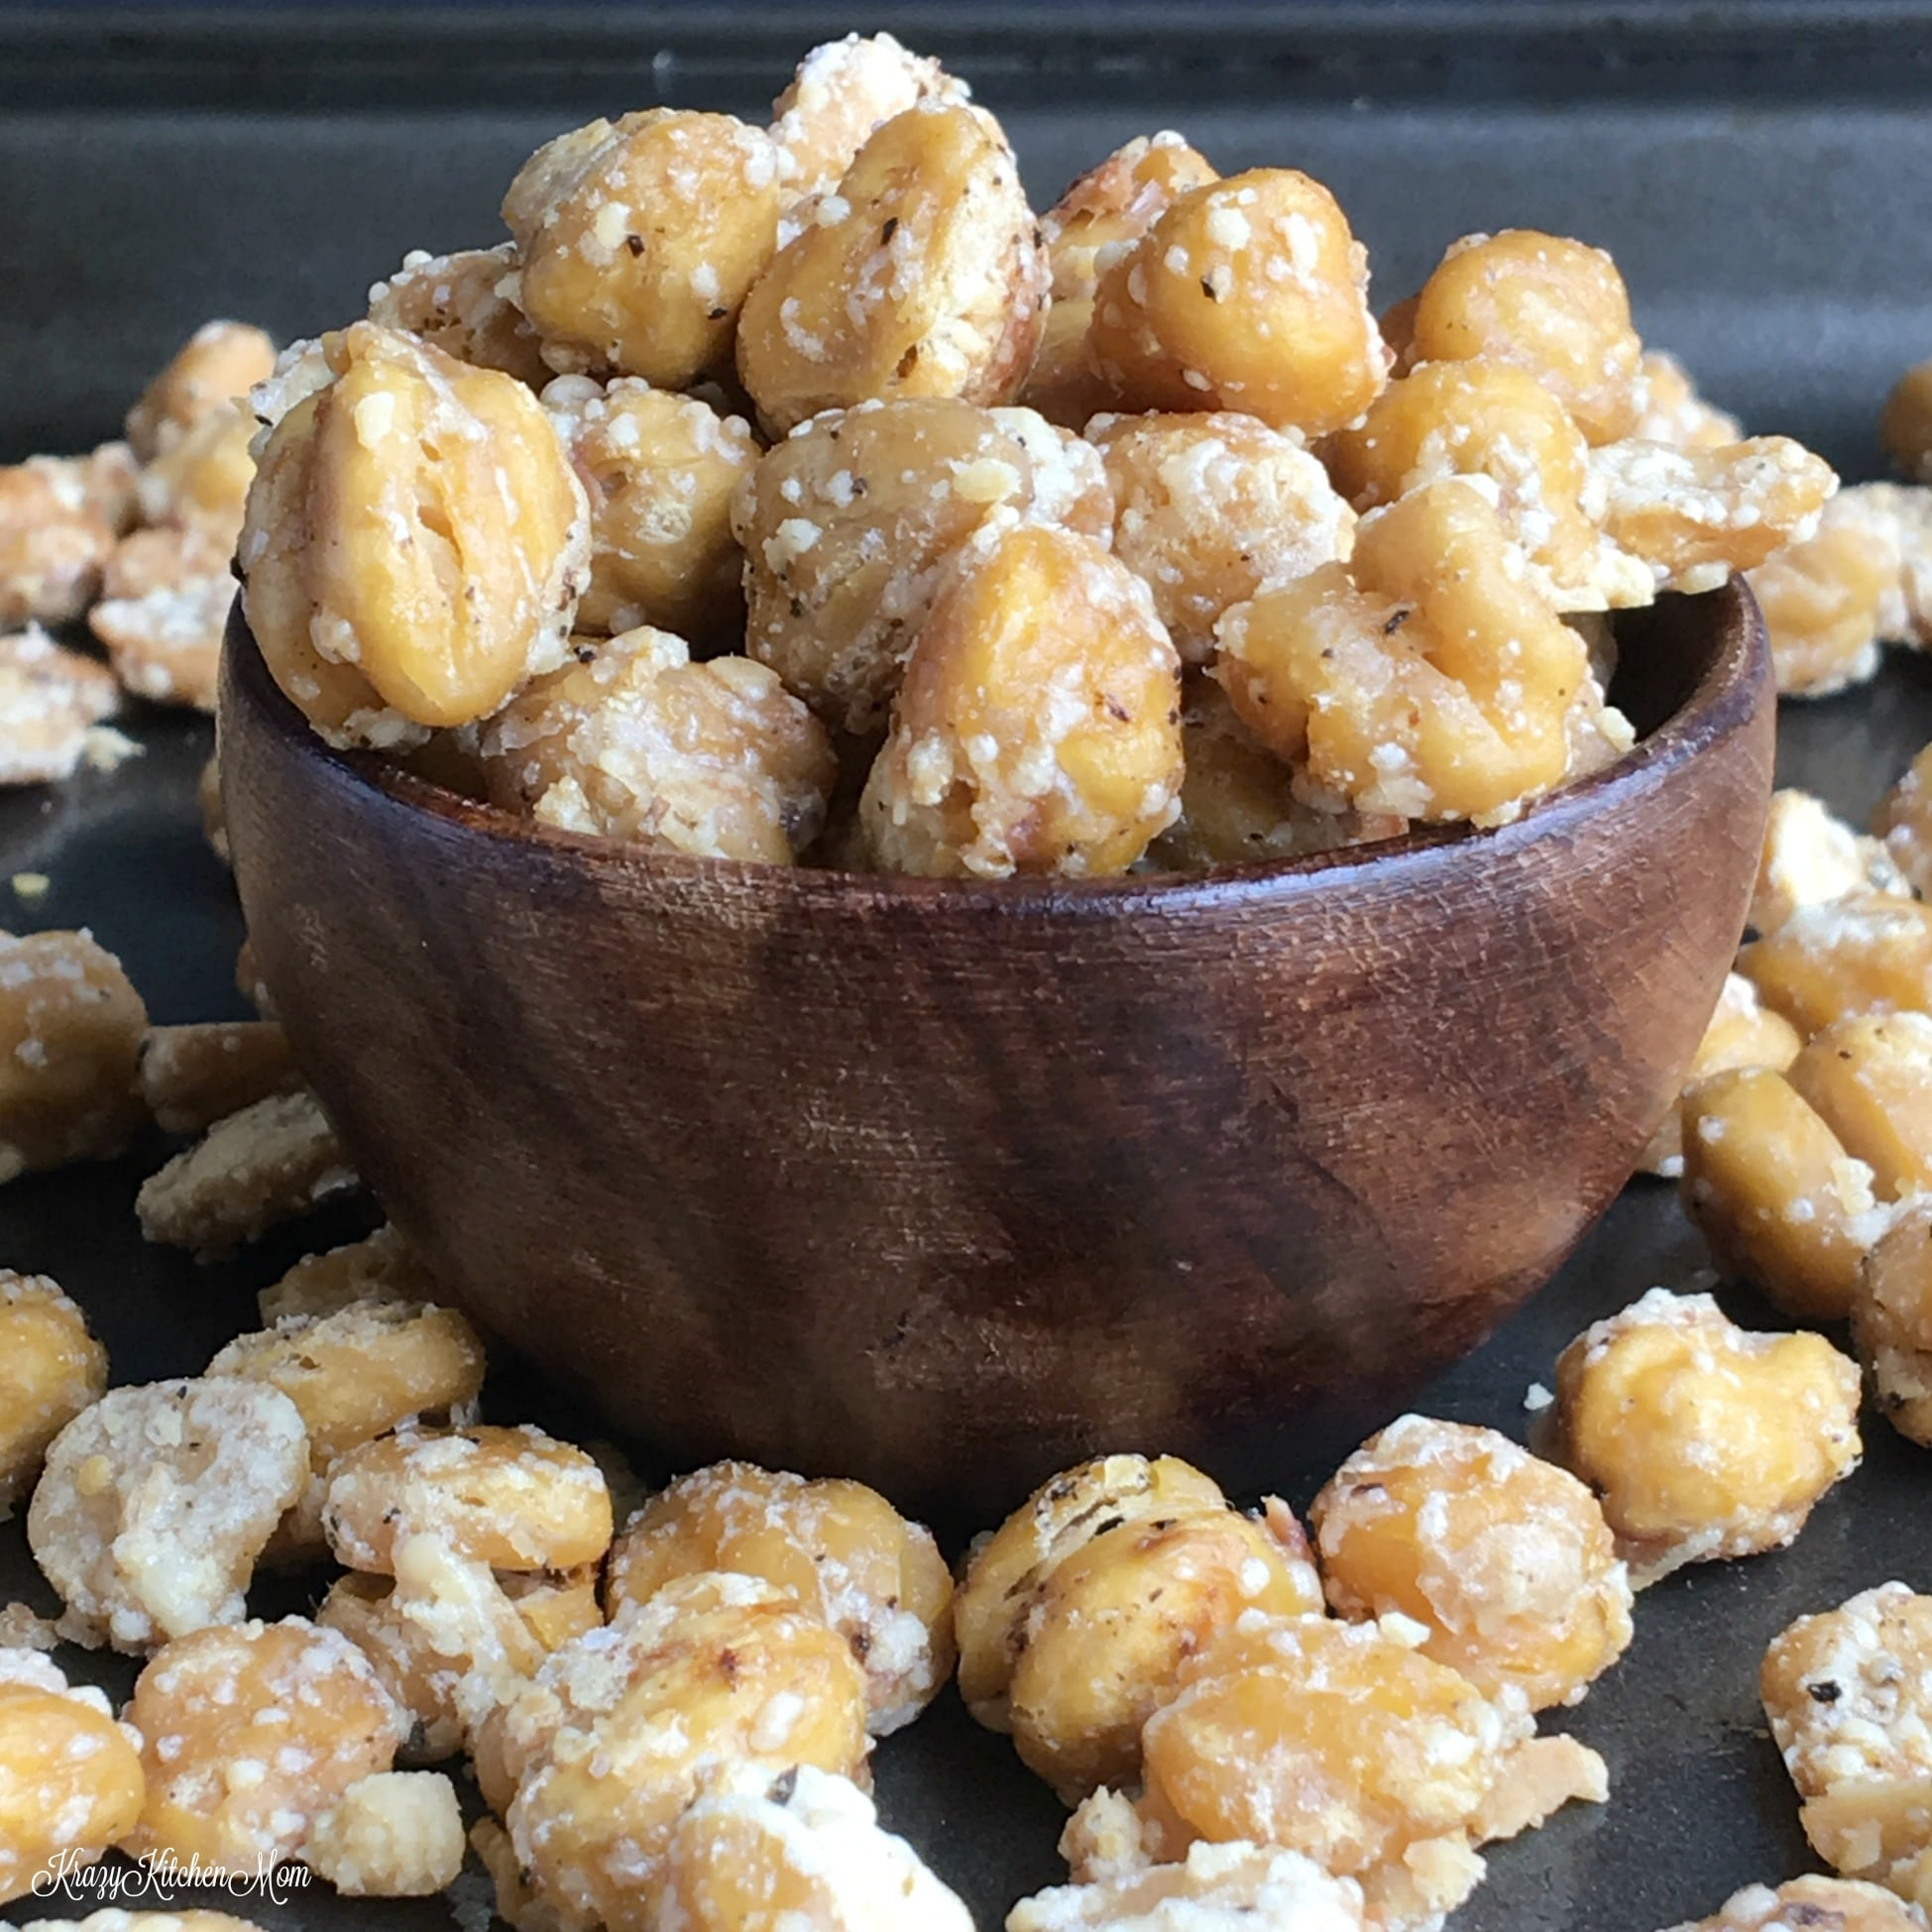 wooden bowl of chickpeas with some spilling out